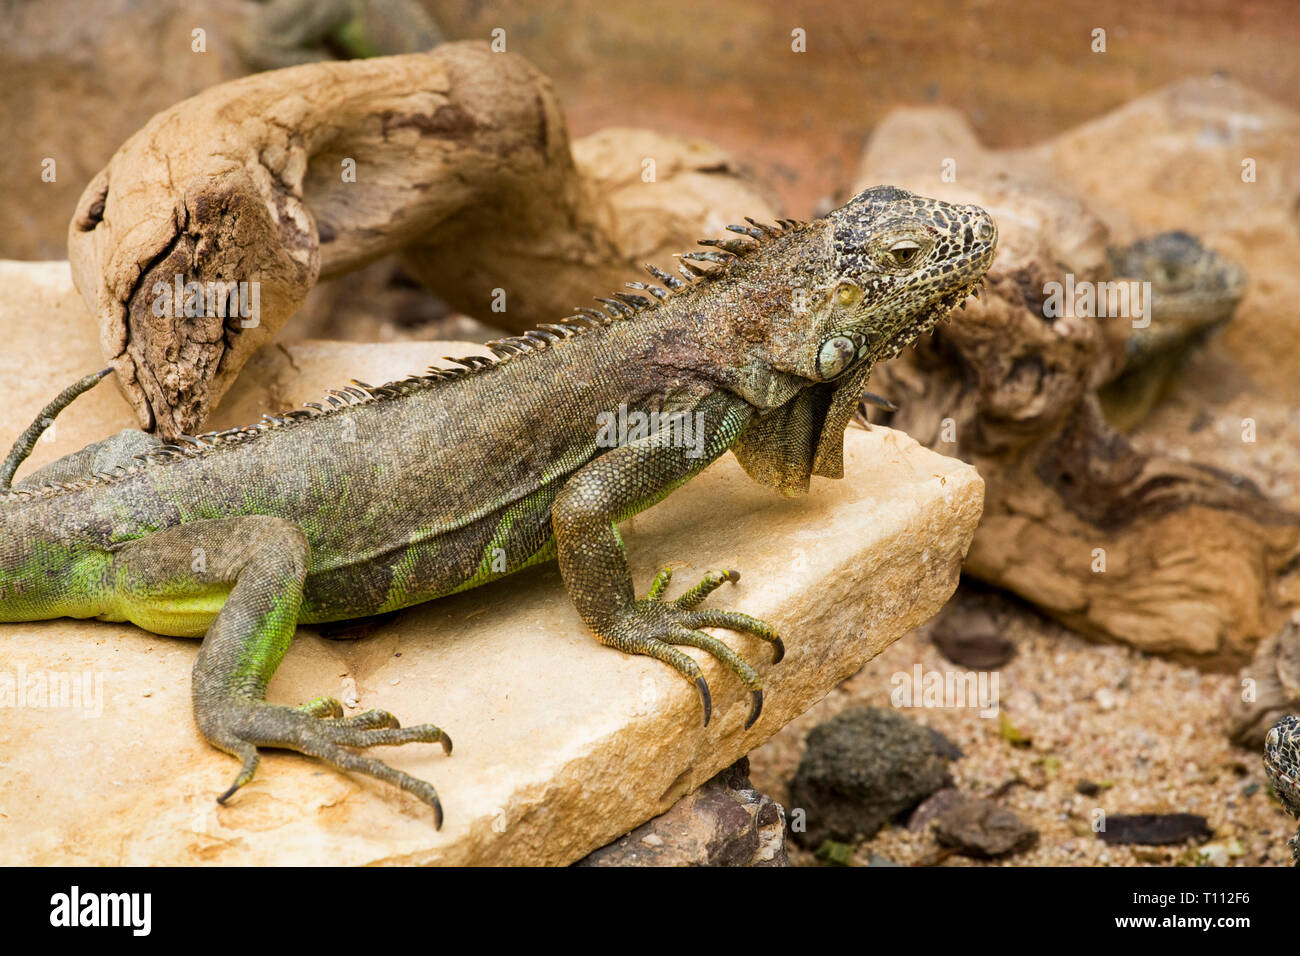 A giant green iguana, or American iguana, in the deserts of Baja California del Sur in Mexicxo - Stock Image